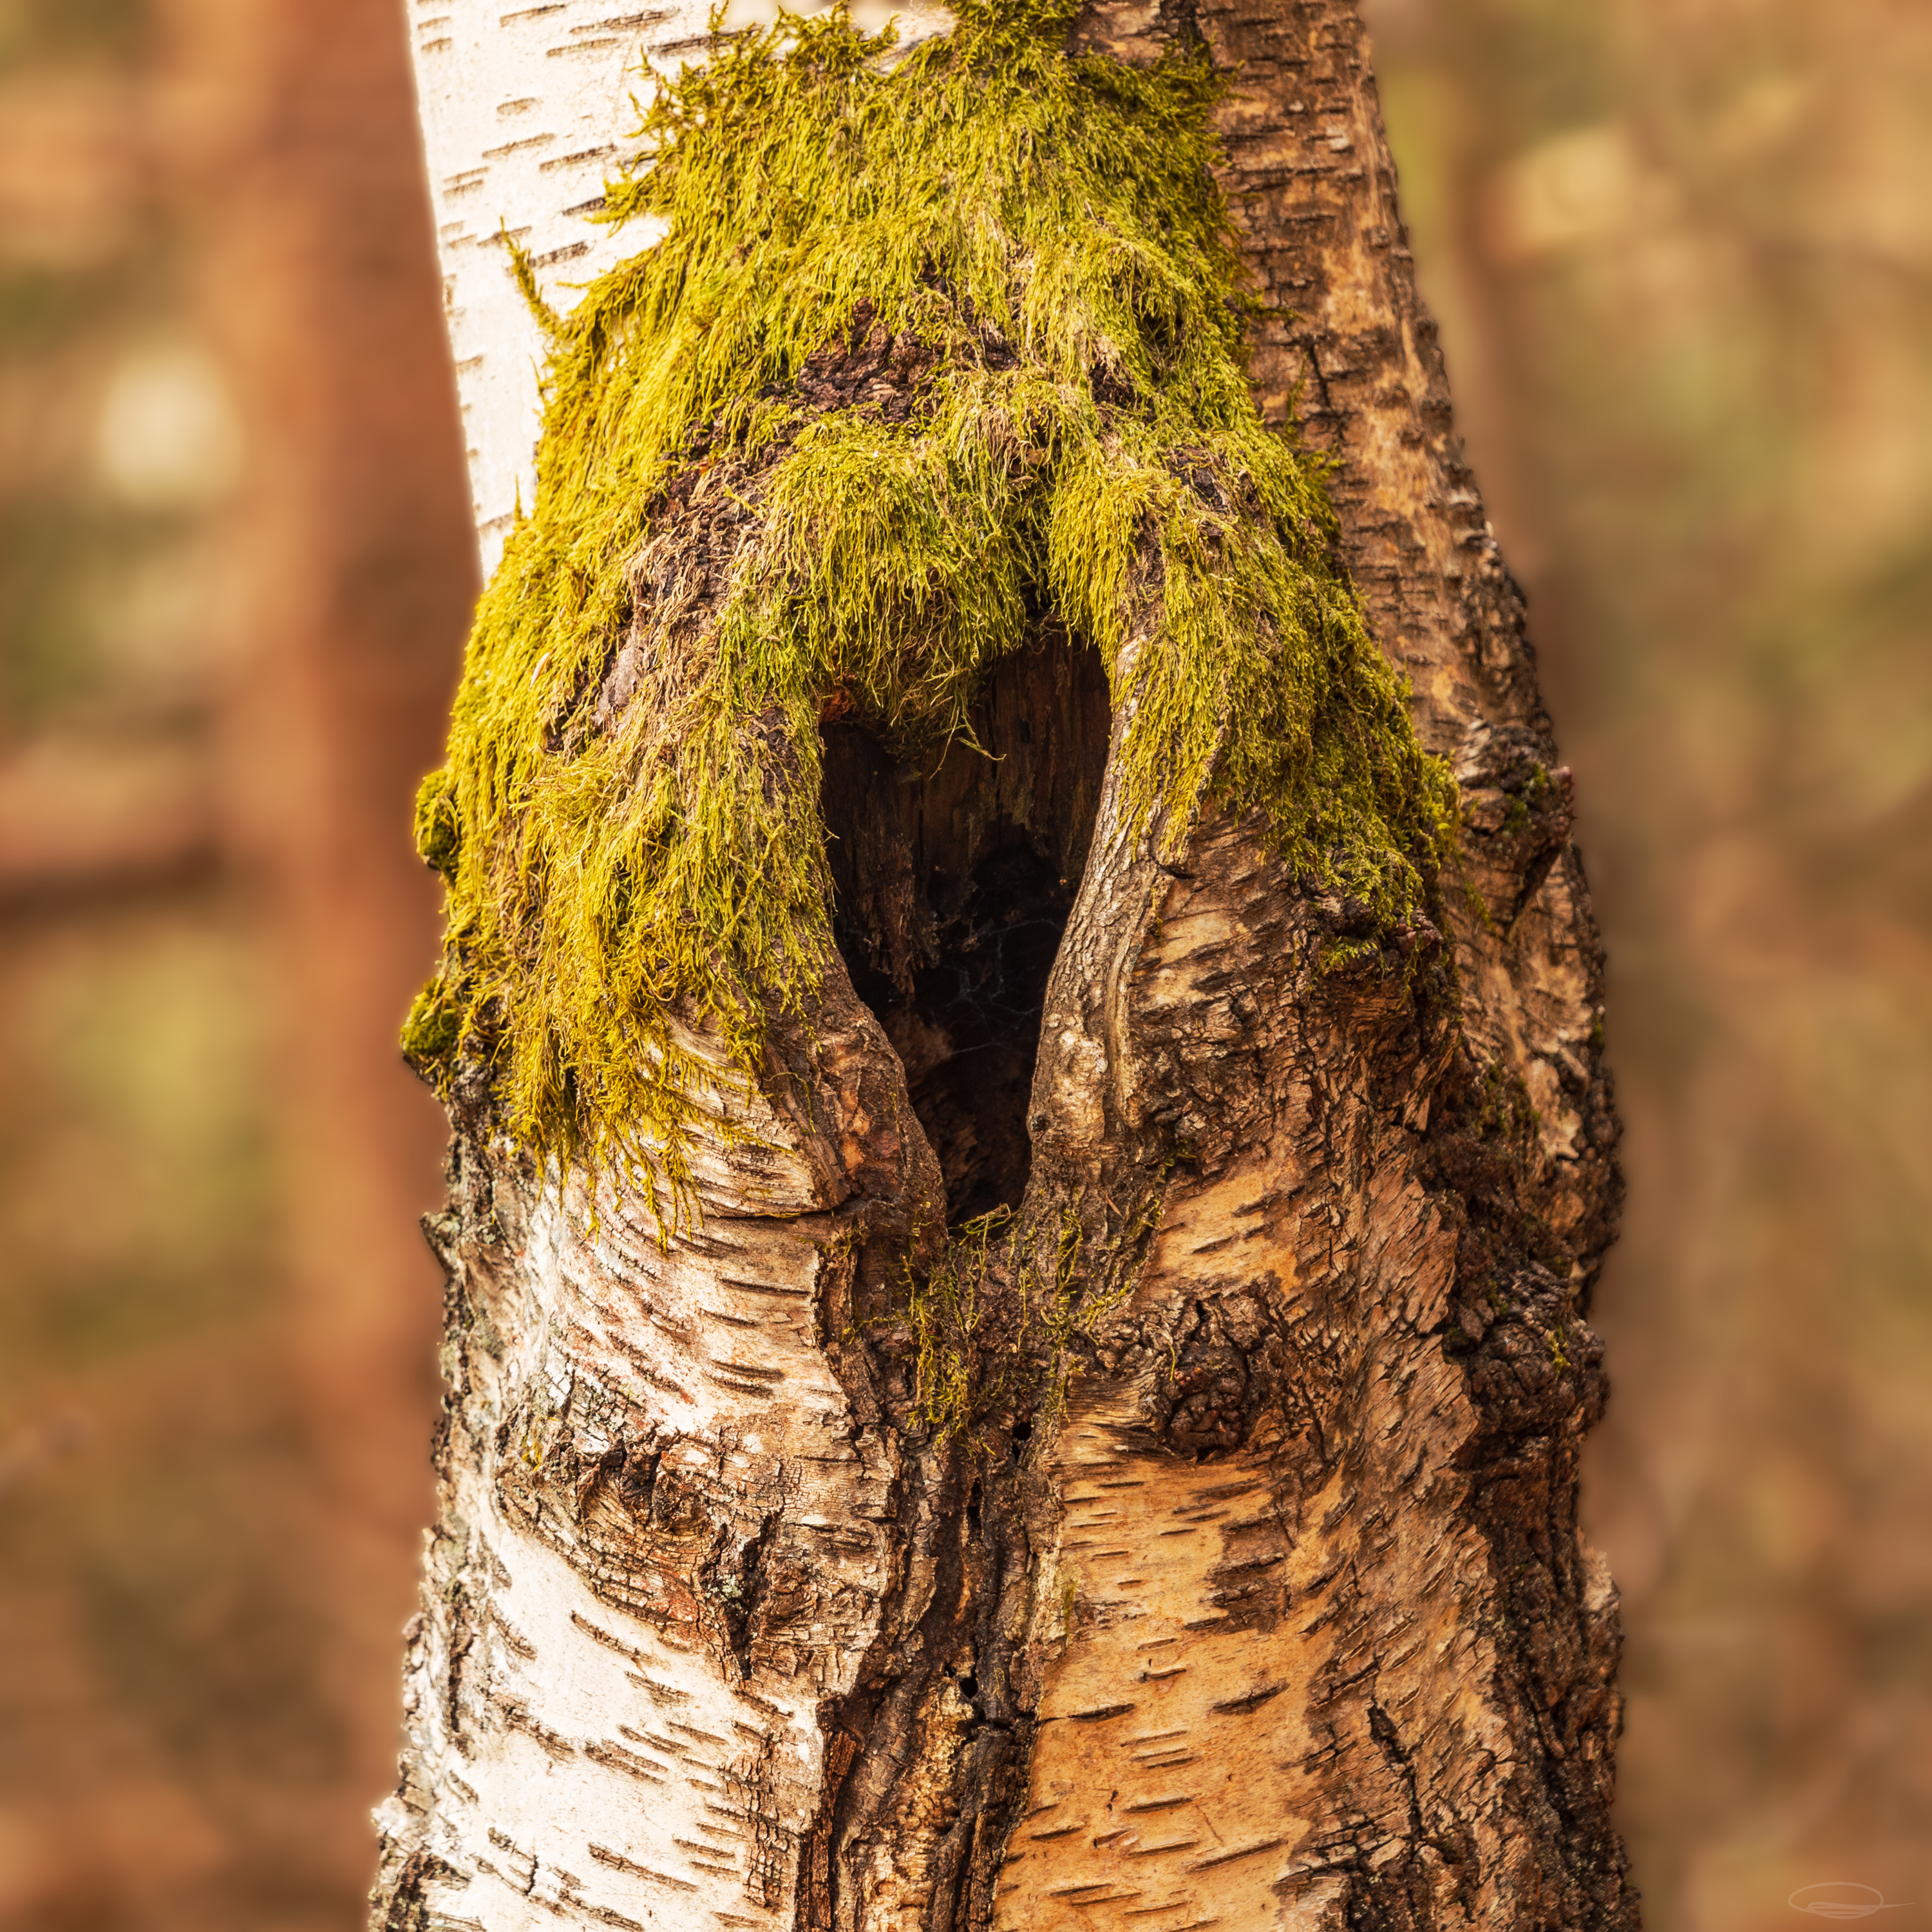 Lake Forstsee: Birch tree with heart-shaped knothole